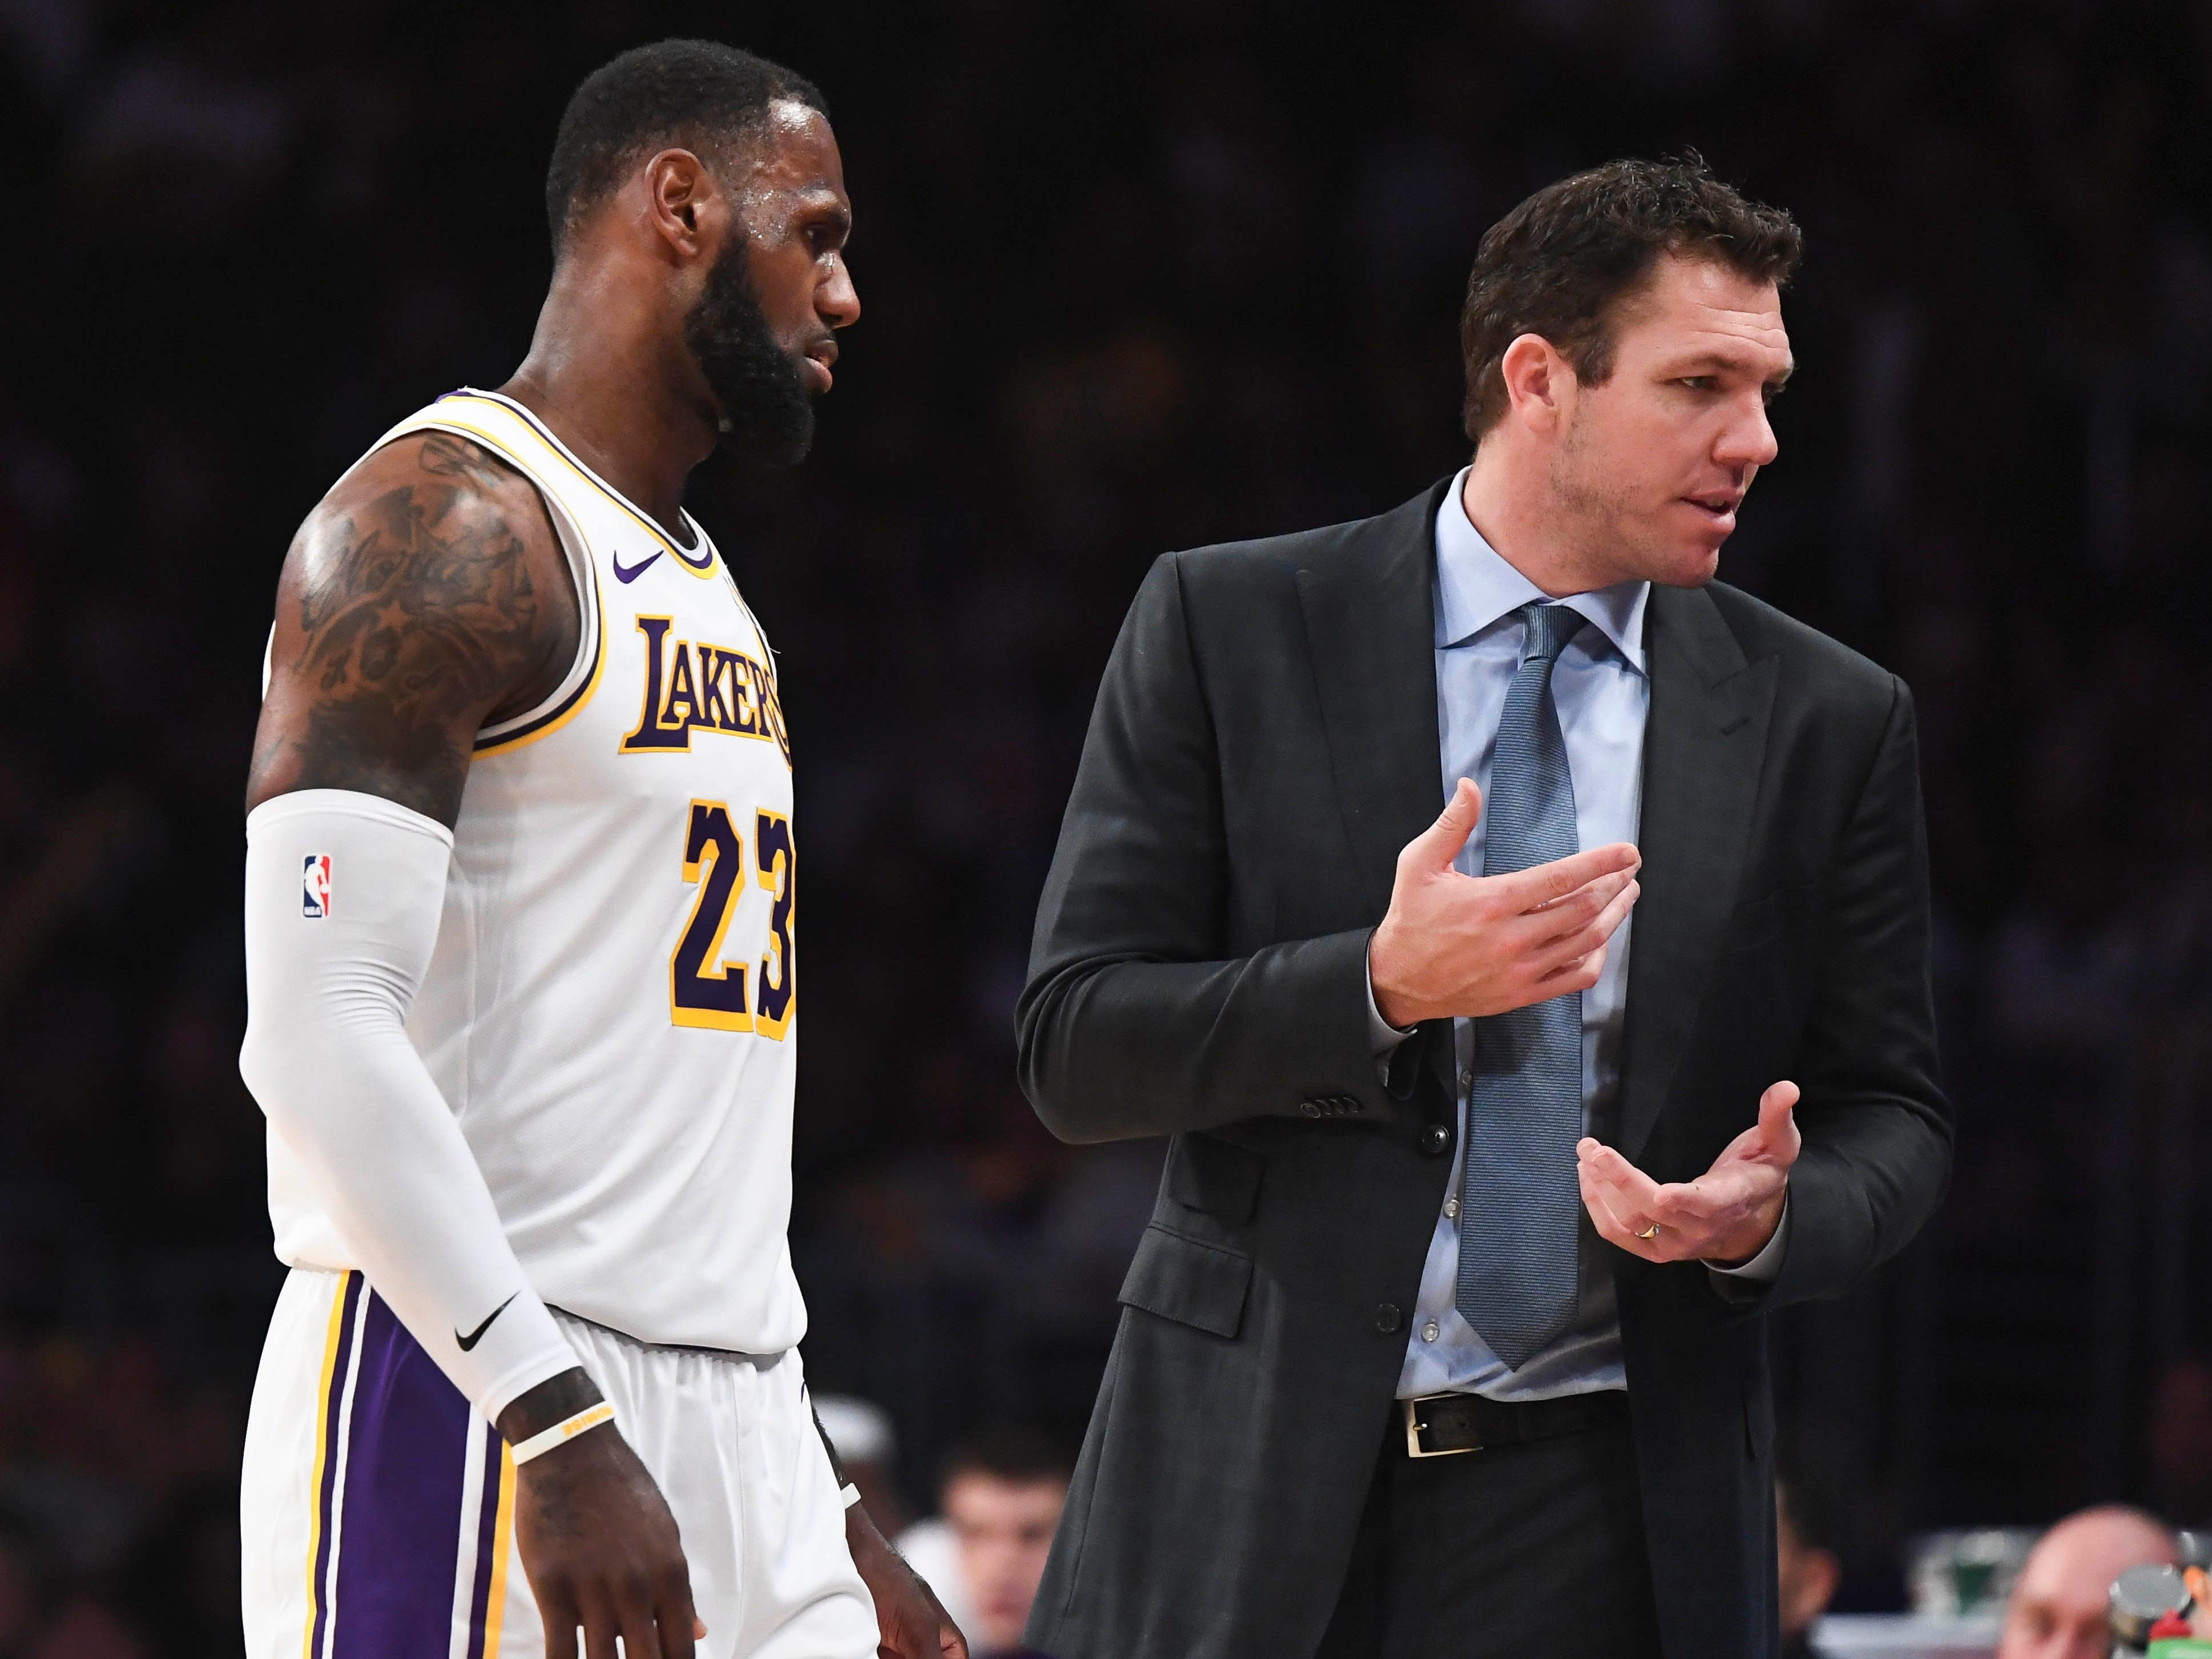 Dec. 2, 2018: LeBron James has a word with Lakers coach Luke Walton during the second half against the Suns.